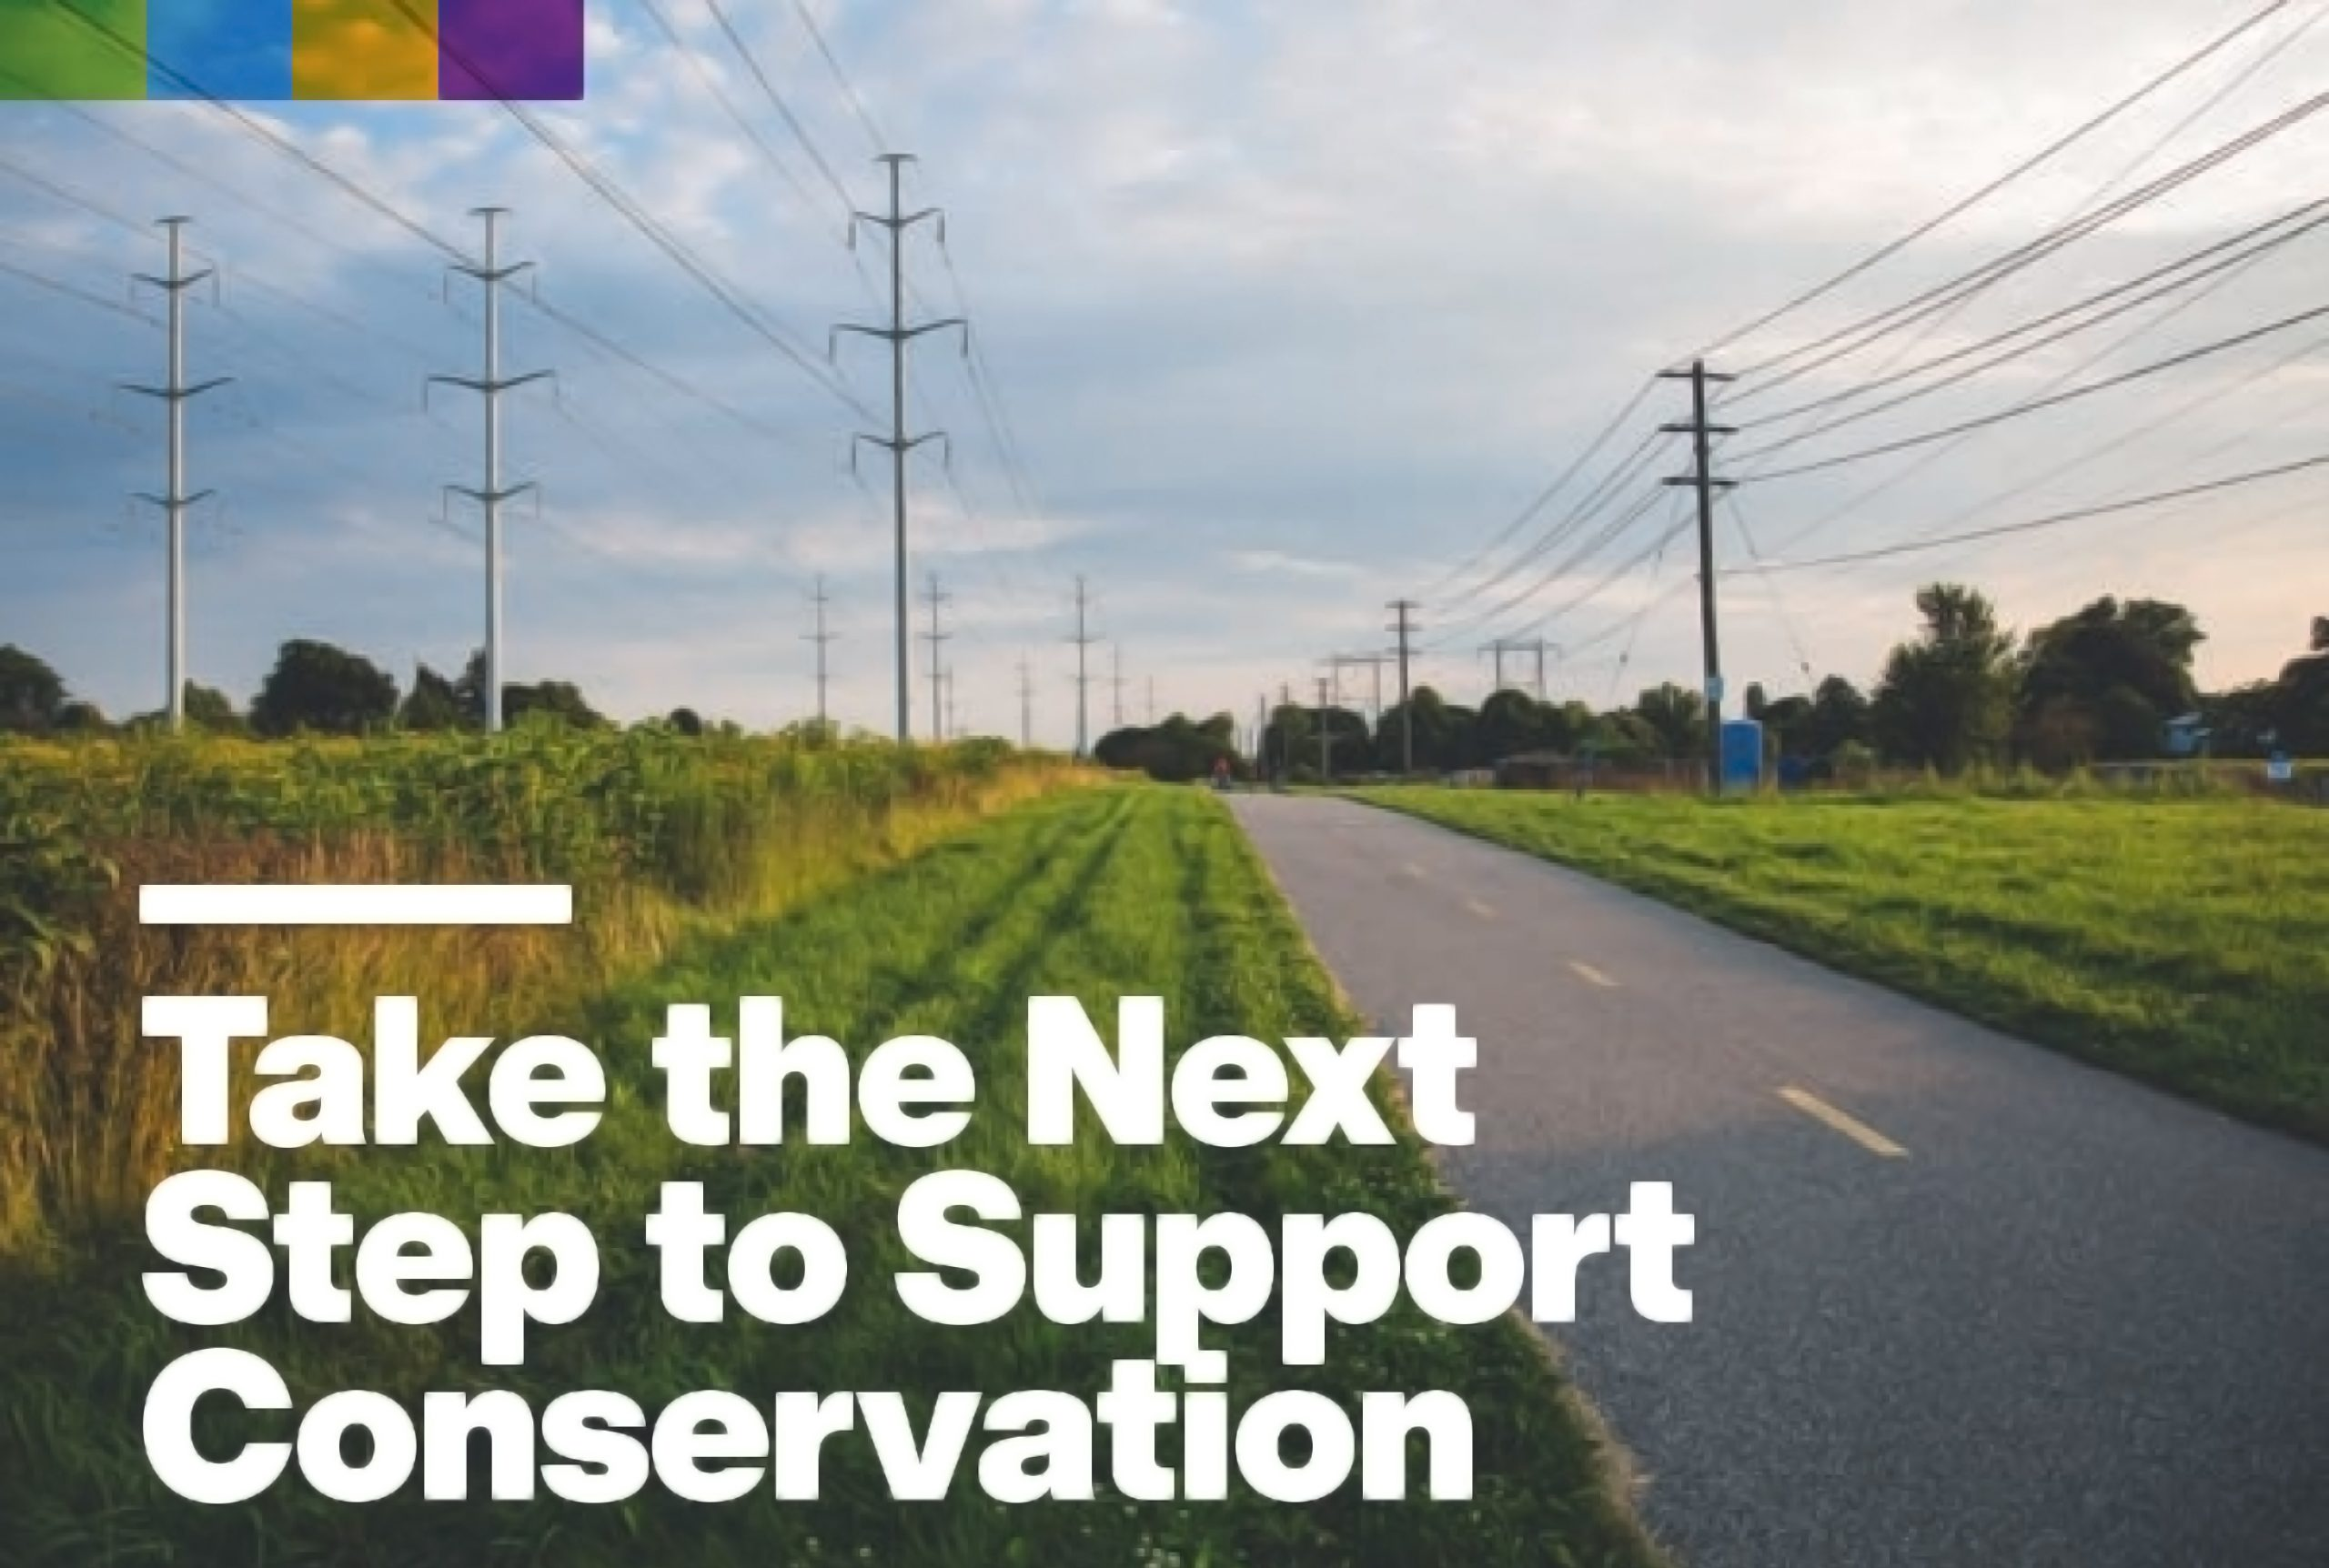 Take the next step to support conservation graphic